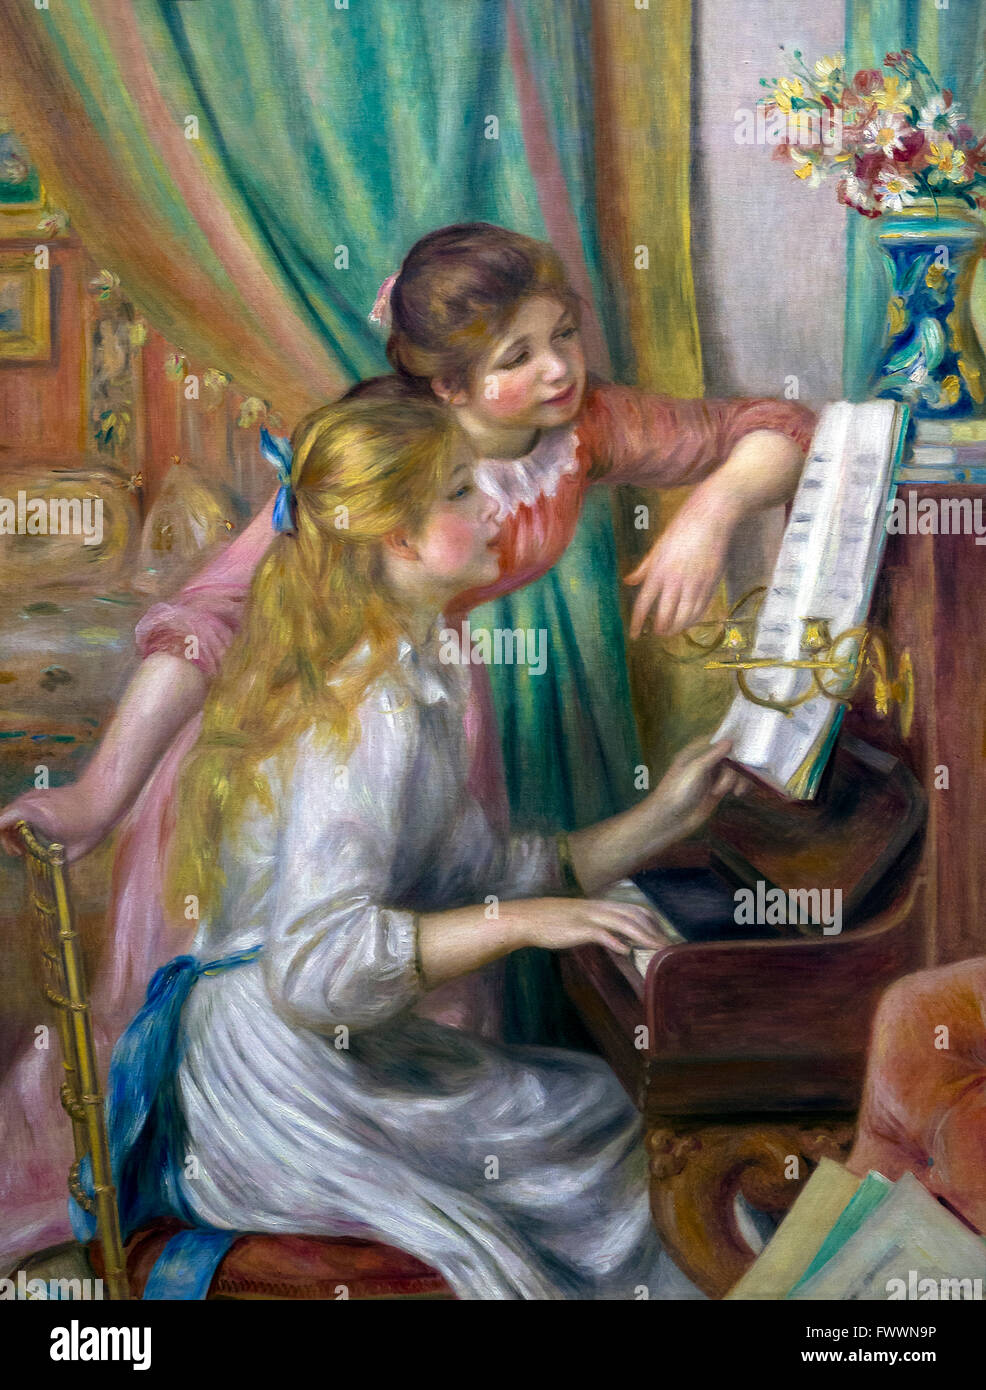 Young women at the piano, Jeunes filles au piano, by Pierre Auguste Renoir, 1892, Musee D'Orsay, Paris, France, - Stock Image